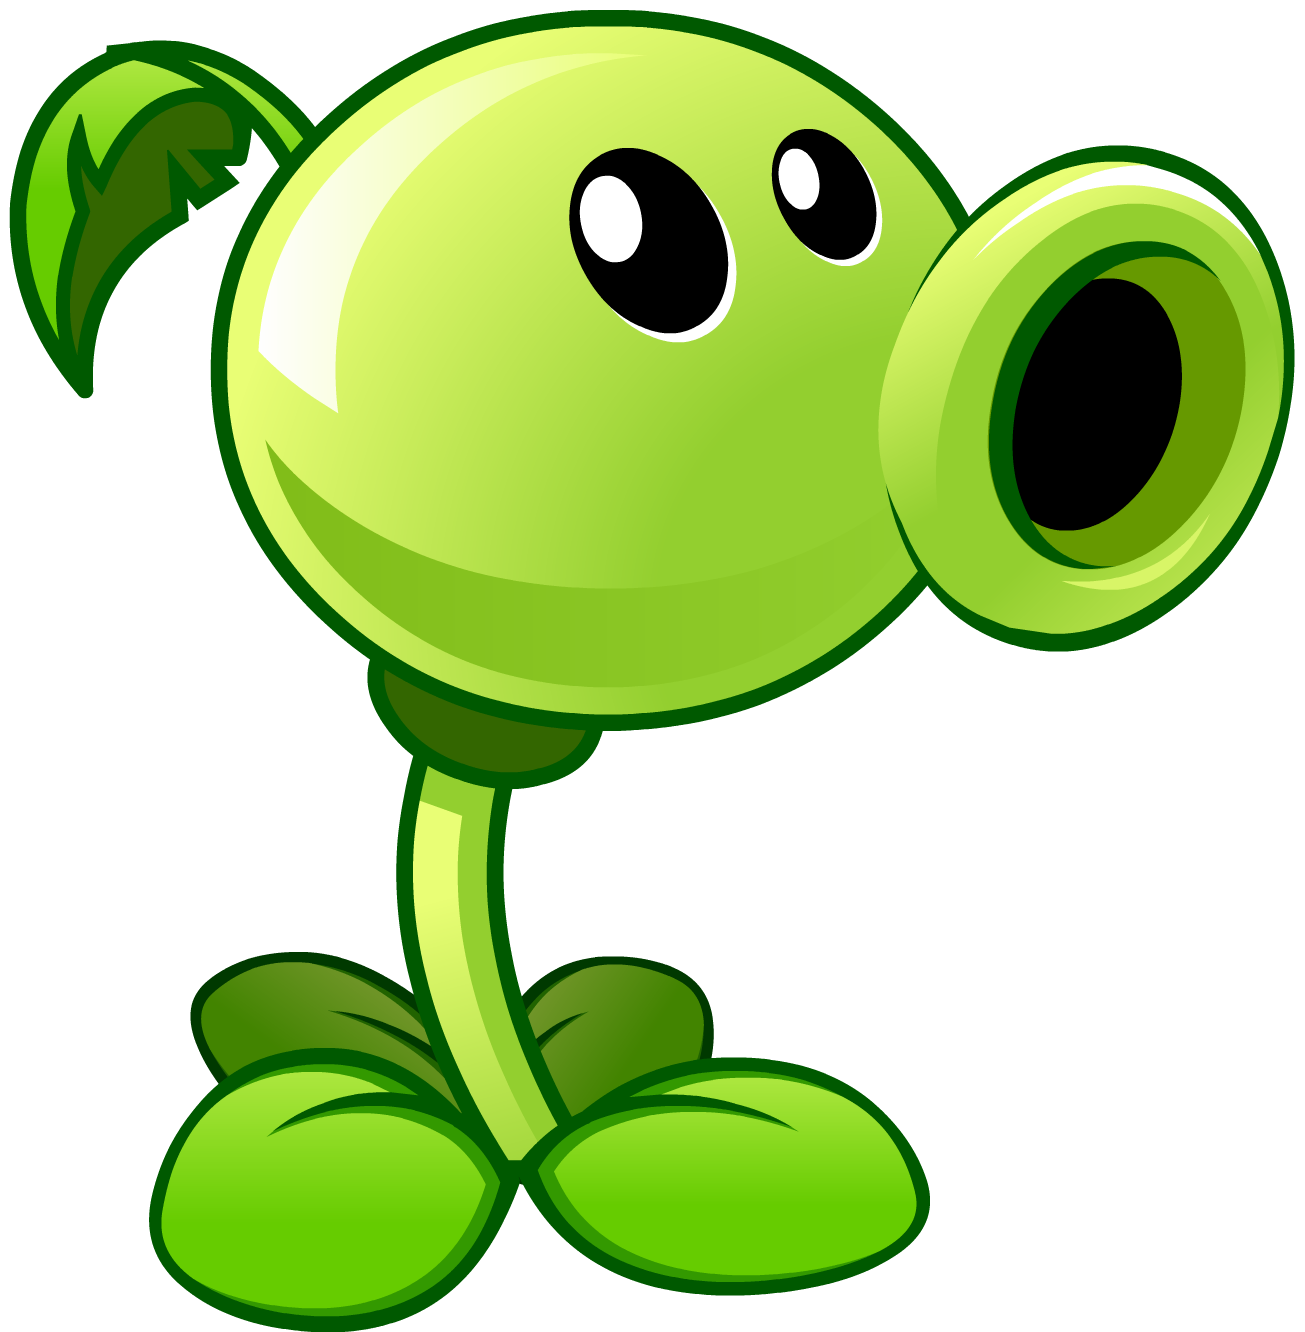 Peashooter plants vs zombies monster wiki fandom powered by wikia its about time national release voltagebd Image collections